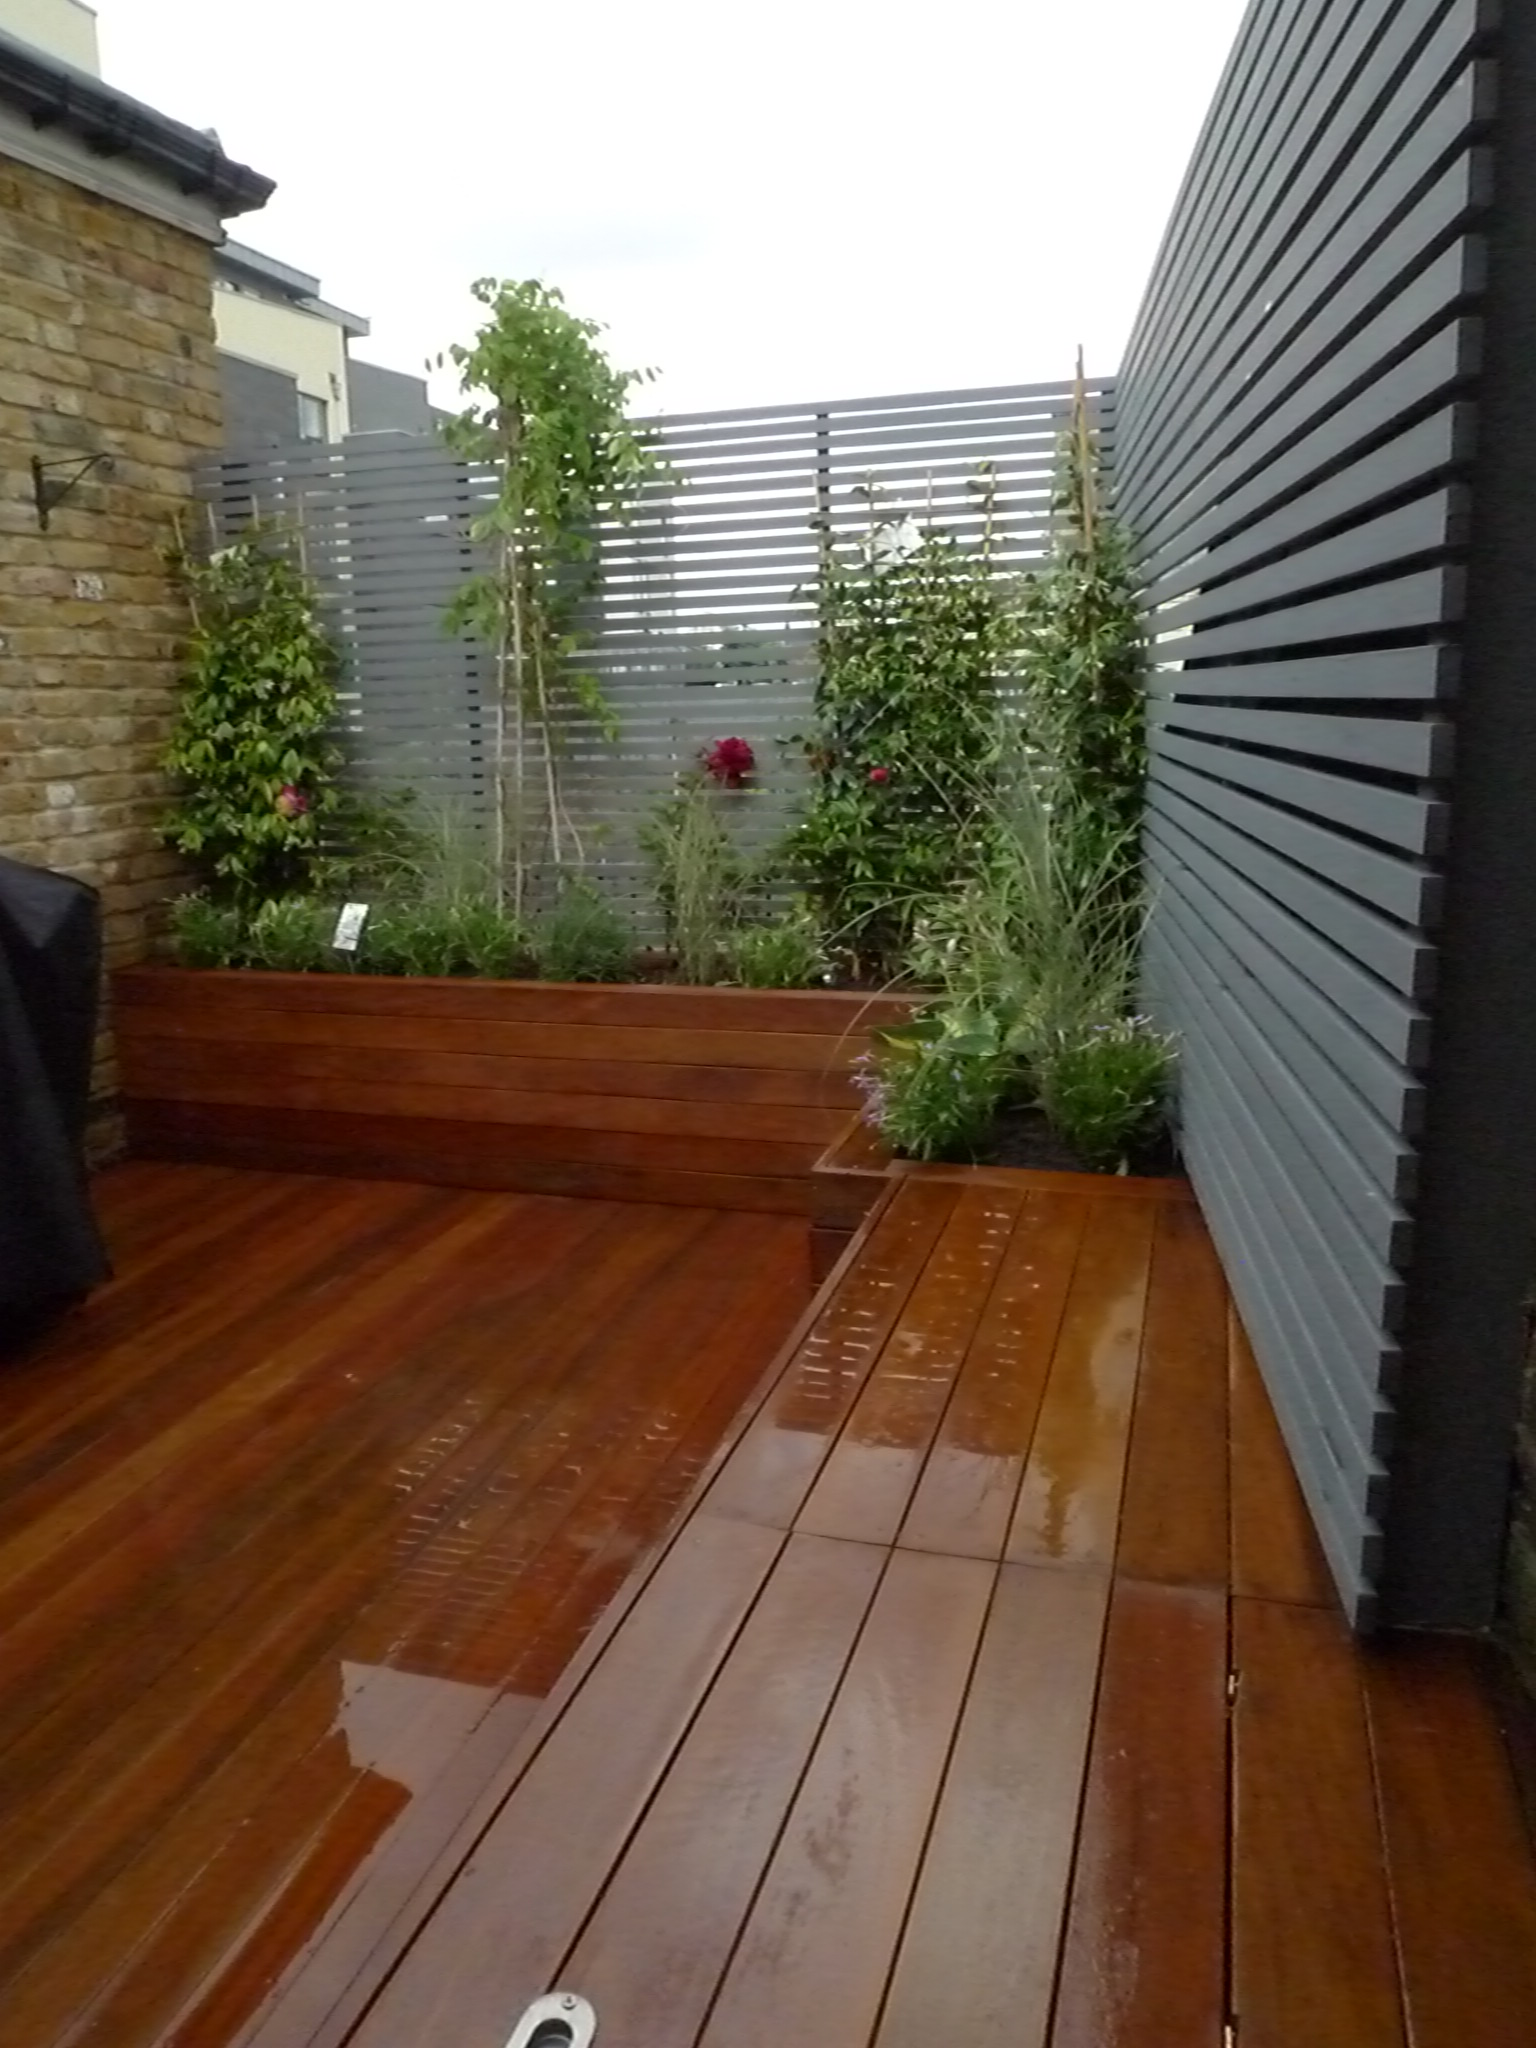 London Small Roof Garden Ideas London Garden Design